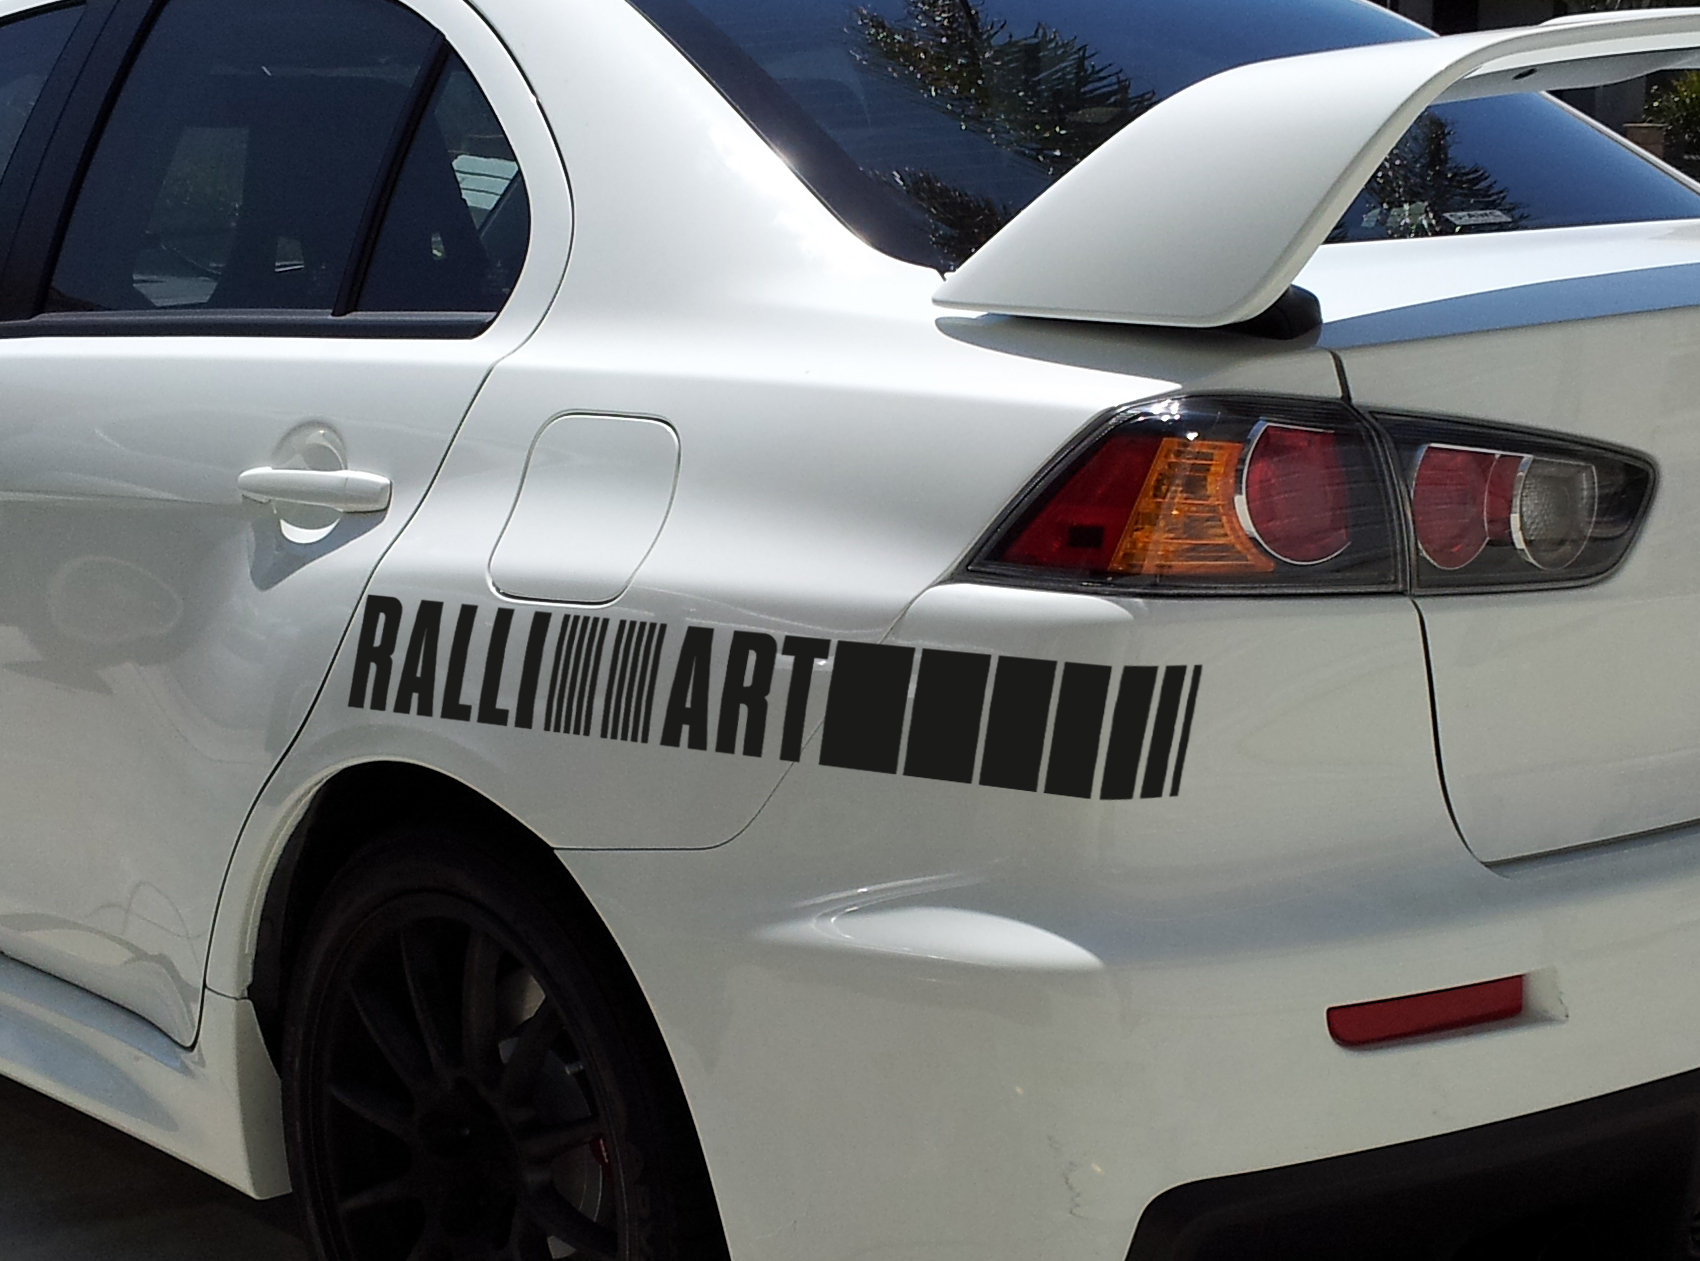 2x ralli art rally racing sports 4x4 car vinyl sticker decal fits to mitsubishi evo lancer